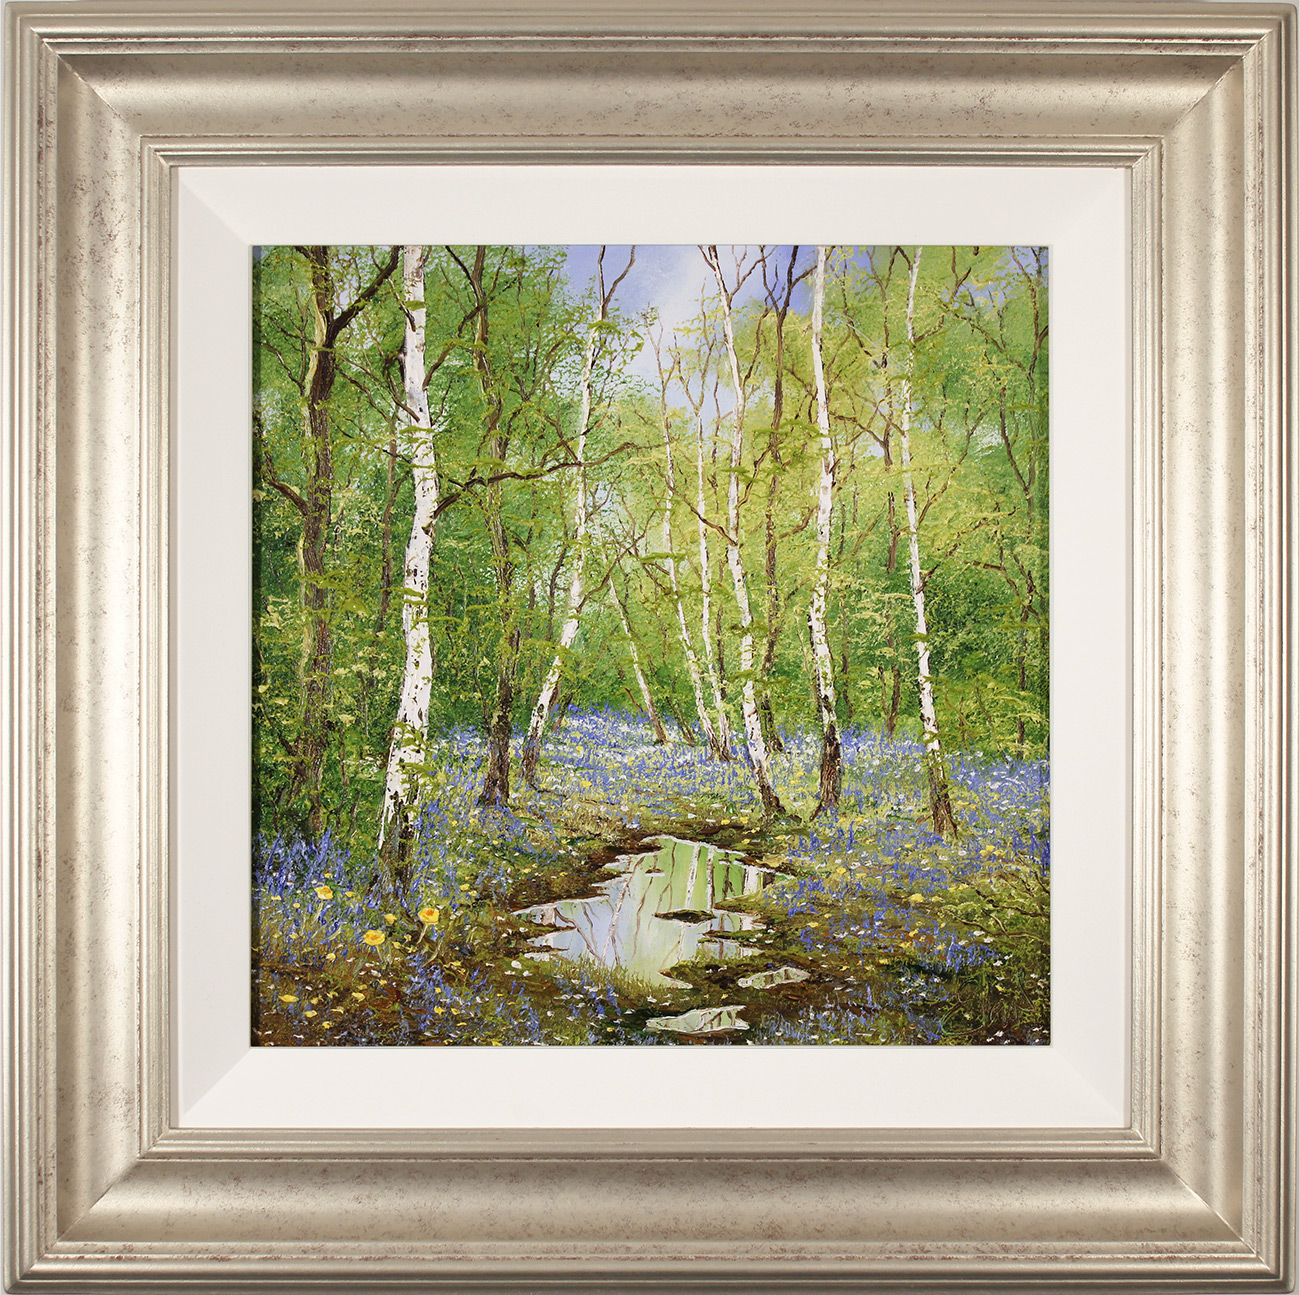 Terry Evans, Original oil painting on canvas, The Bluebell Wood, click to enlarge